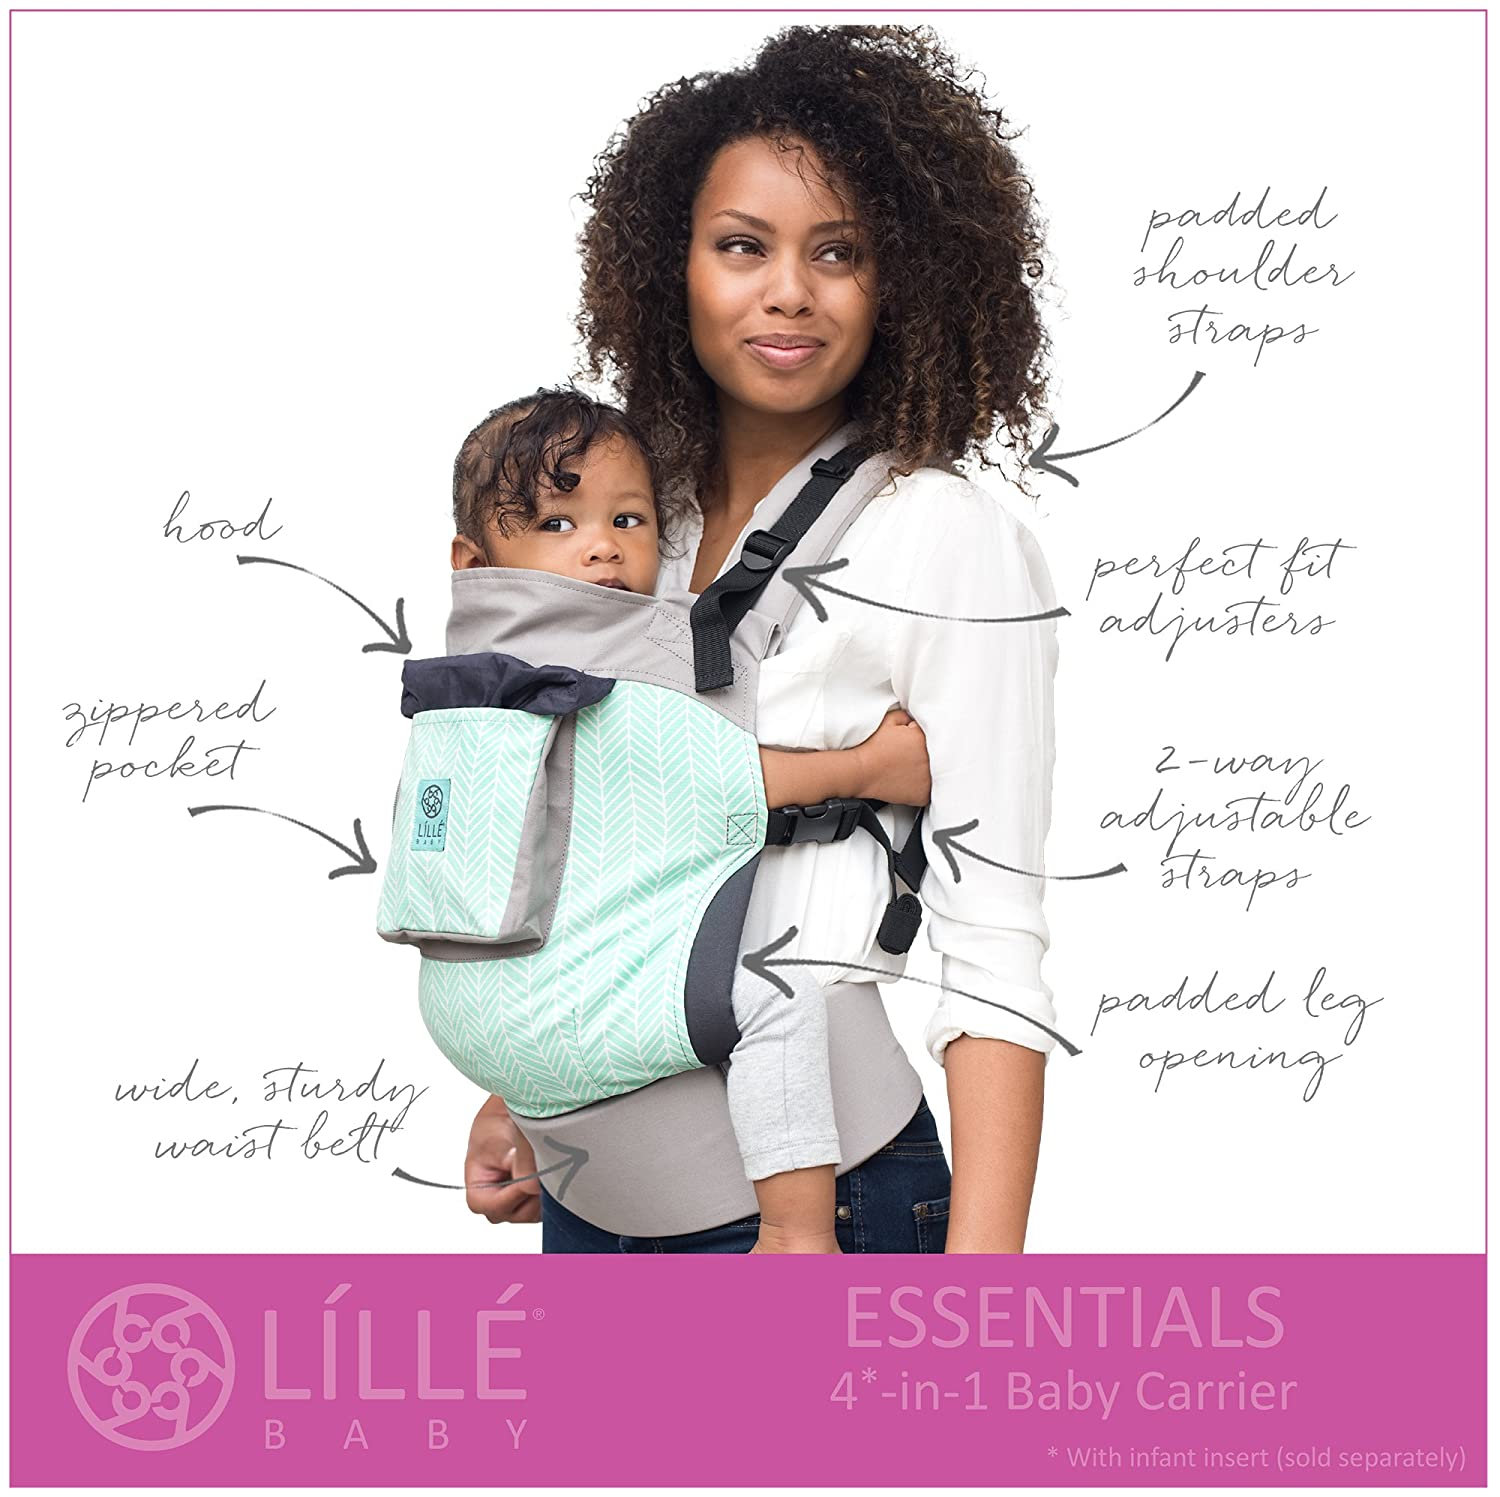 4 In 1 Essentials Baby Carrier By Lillebaby Lily Pond